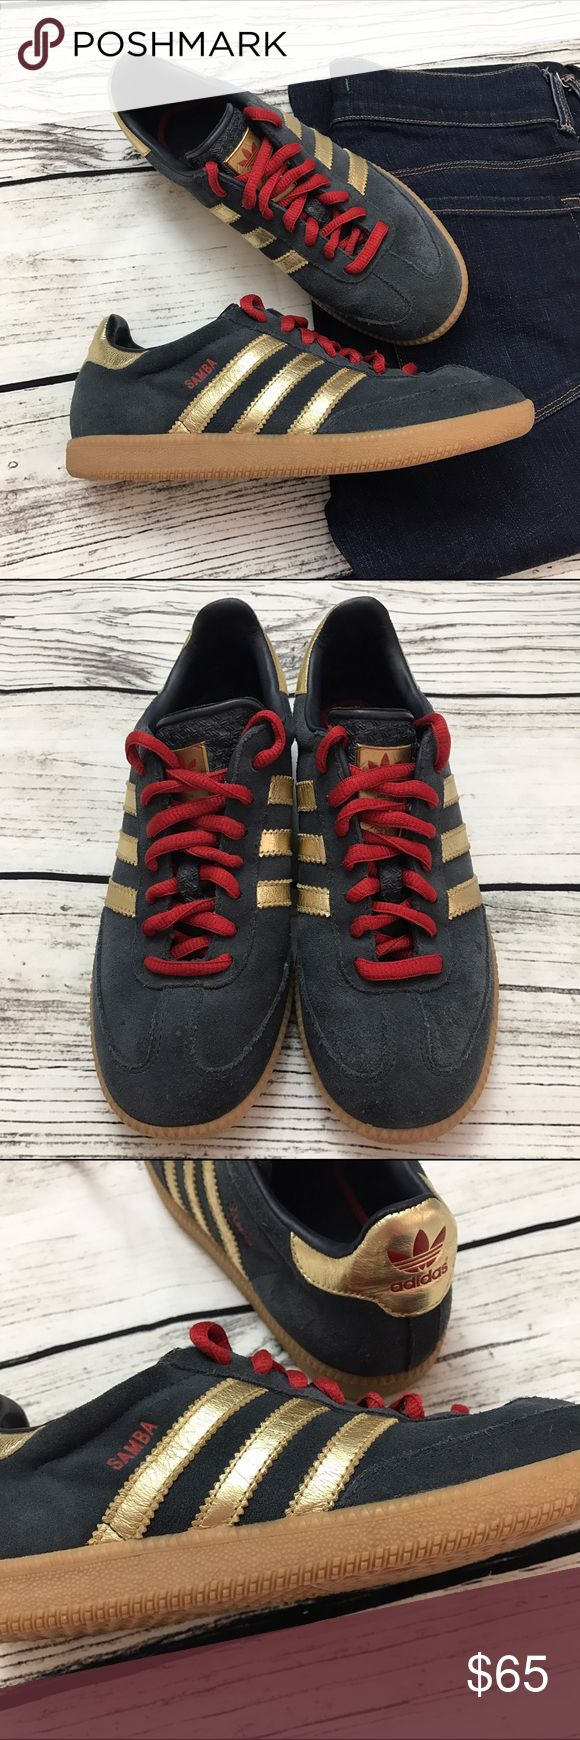 ADIDAS Samba Suede Sneakers Blue Red Gold ADIDAS Samba Suede Sneakers Blue Red Gold labeled a size 6 Big Kids which is the EQUIVALENT of a size 8 women's. Excellent condition, only worn a handful of times. Navy blue suede, red laces and Metallic Gold detailing. Hard to find and really unique! Shoes Athletic Shoes